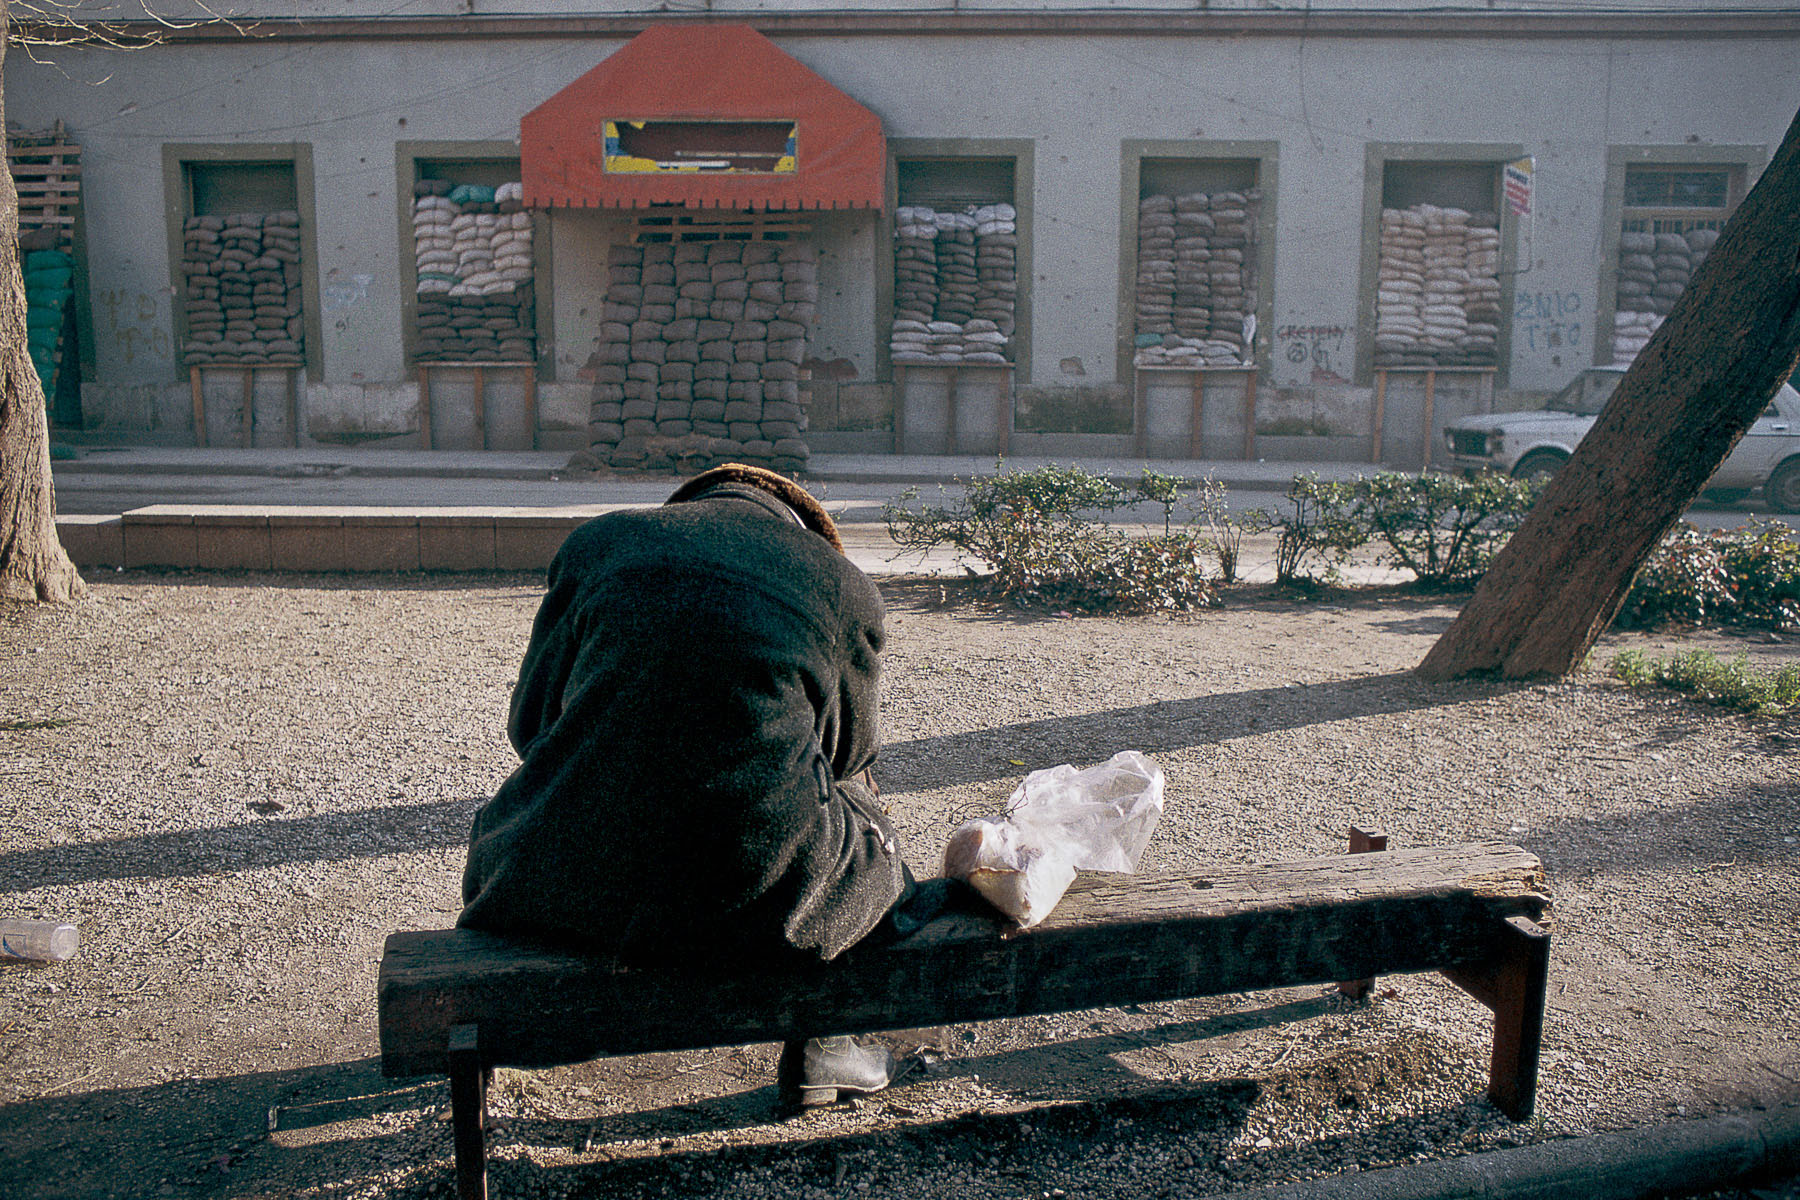 Inhabitant of the Muslim area of Mostar besieged by the Croatian militias in January 1994